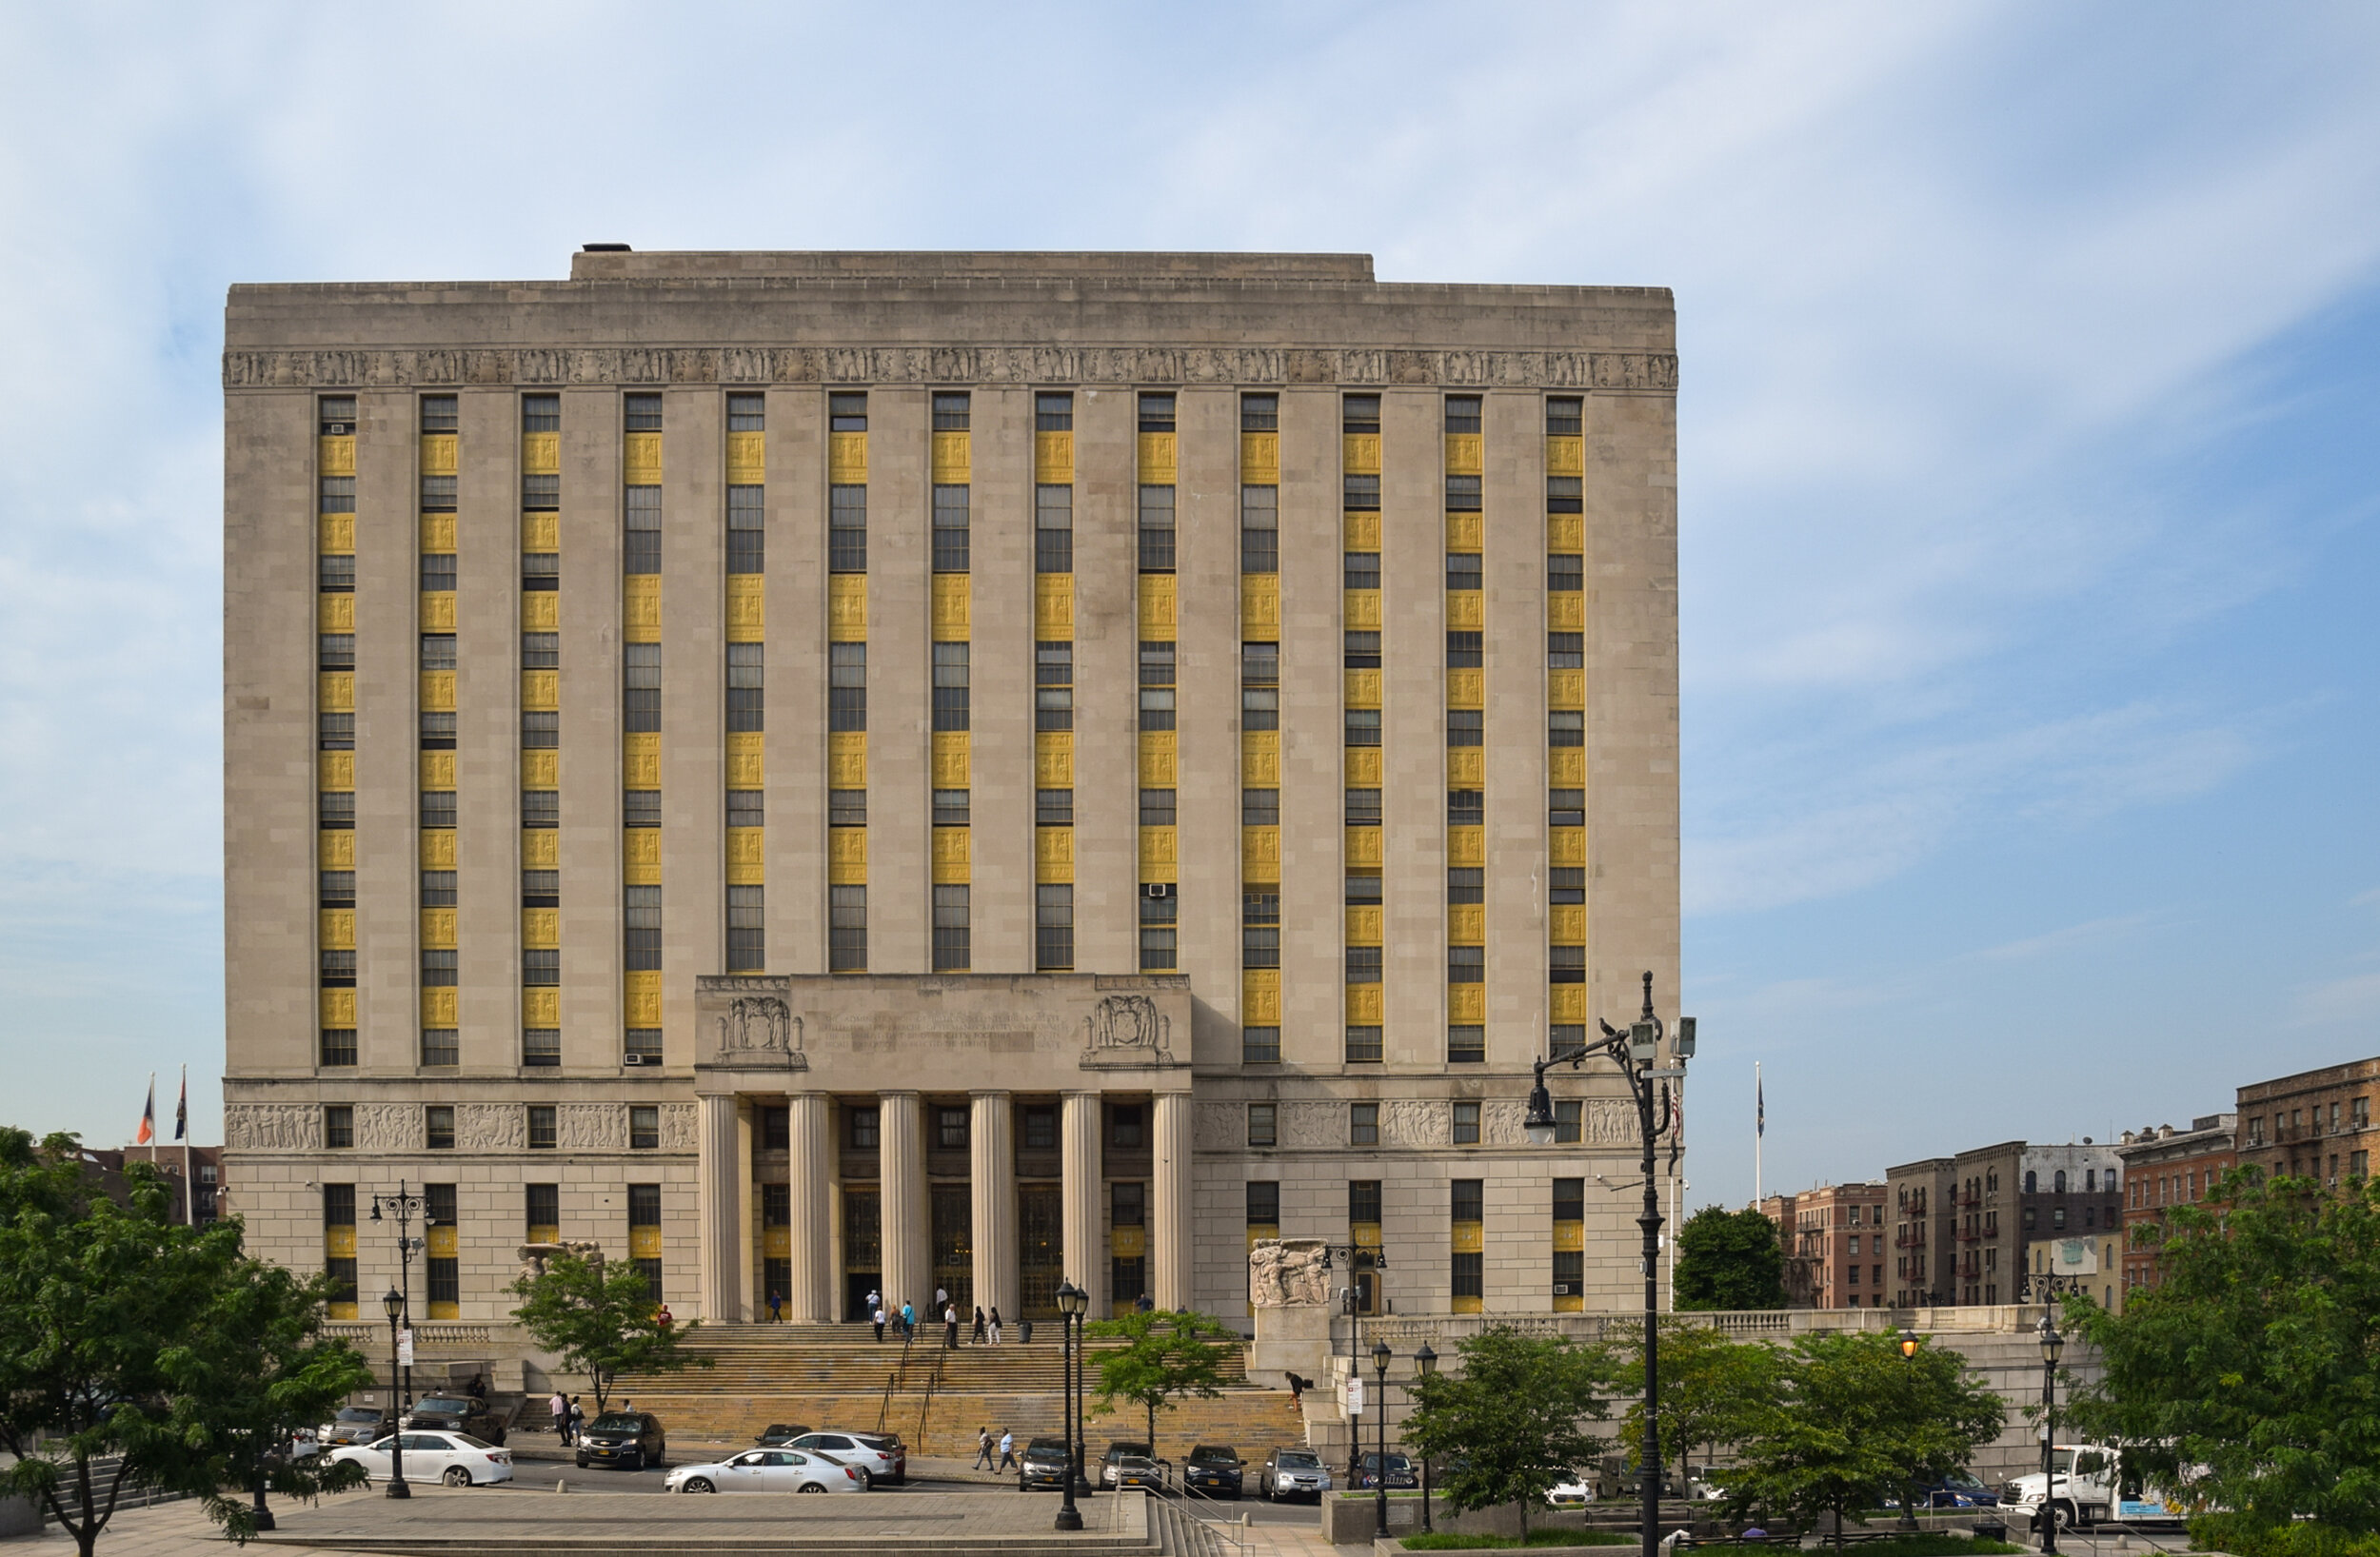 Bronx County Courthouse, North facade (from East 161st Street)